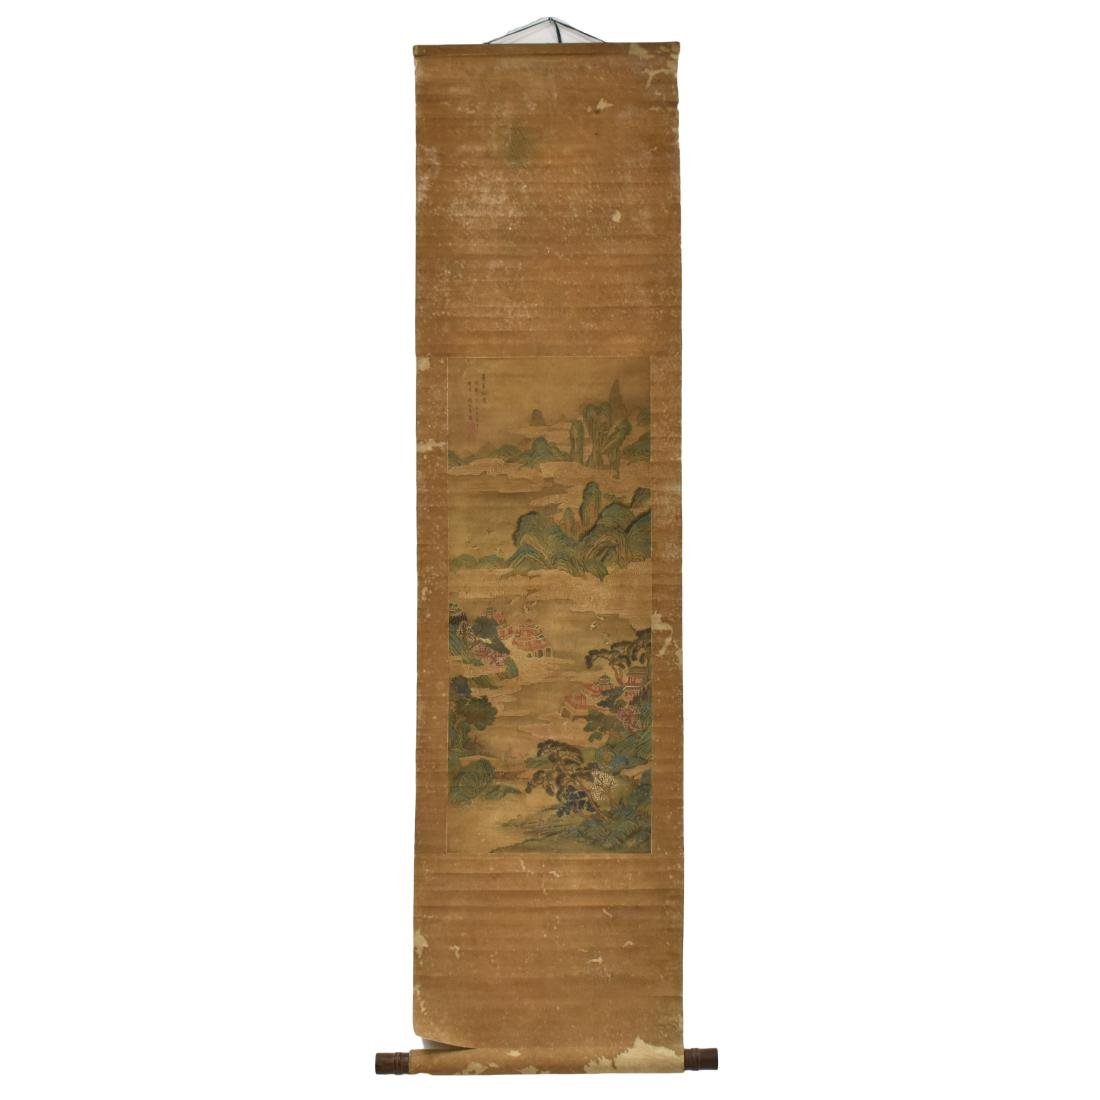 QING DYNASTY SCROLL PAINTING OF A MOUNTAINSIDE PAVILION - 2